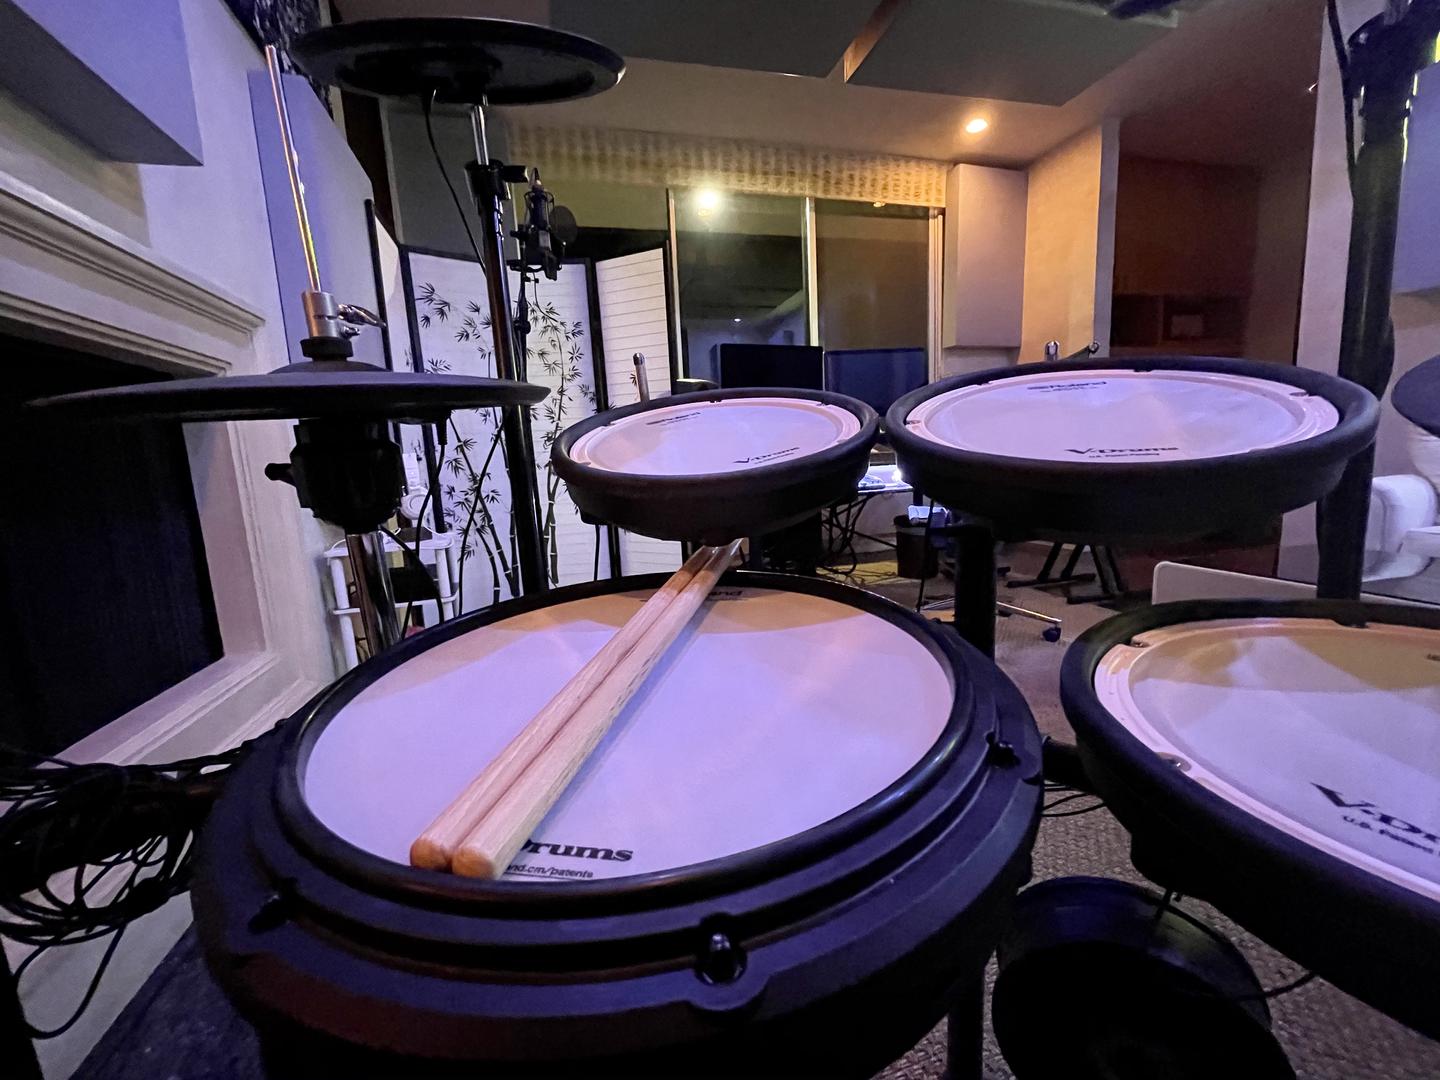 Summit Studios - roland td17 drums